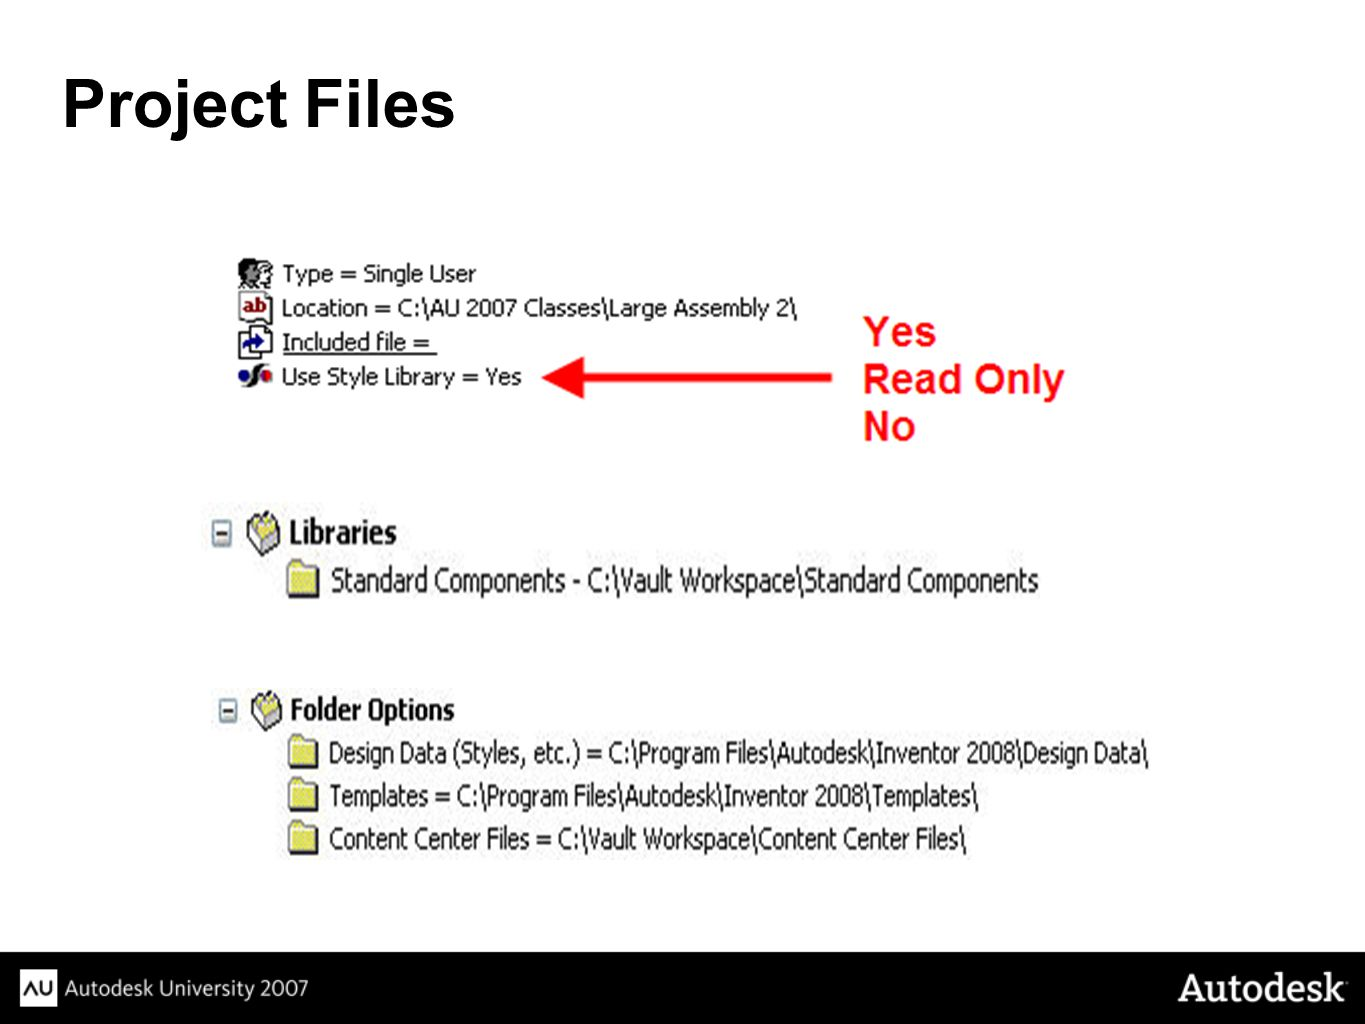 Project Files Instructions: